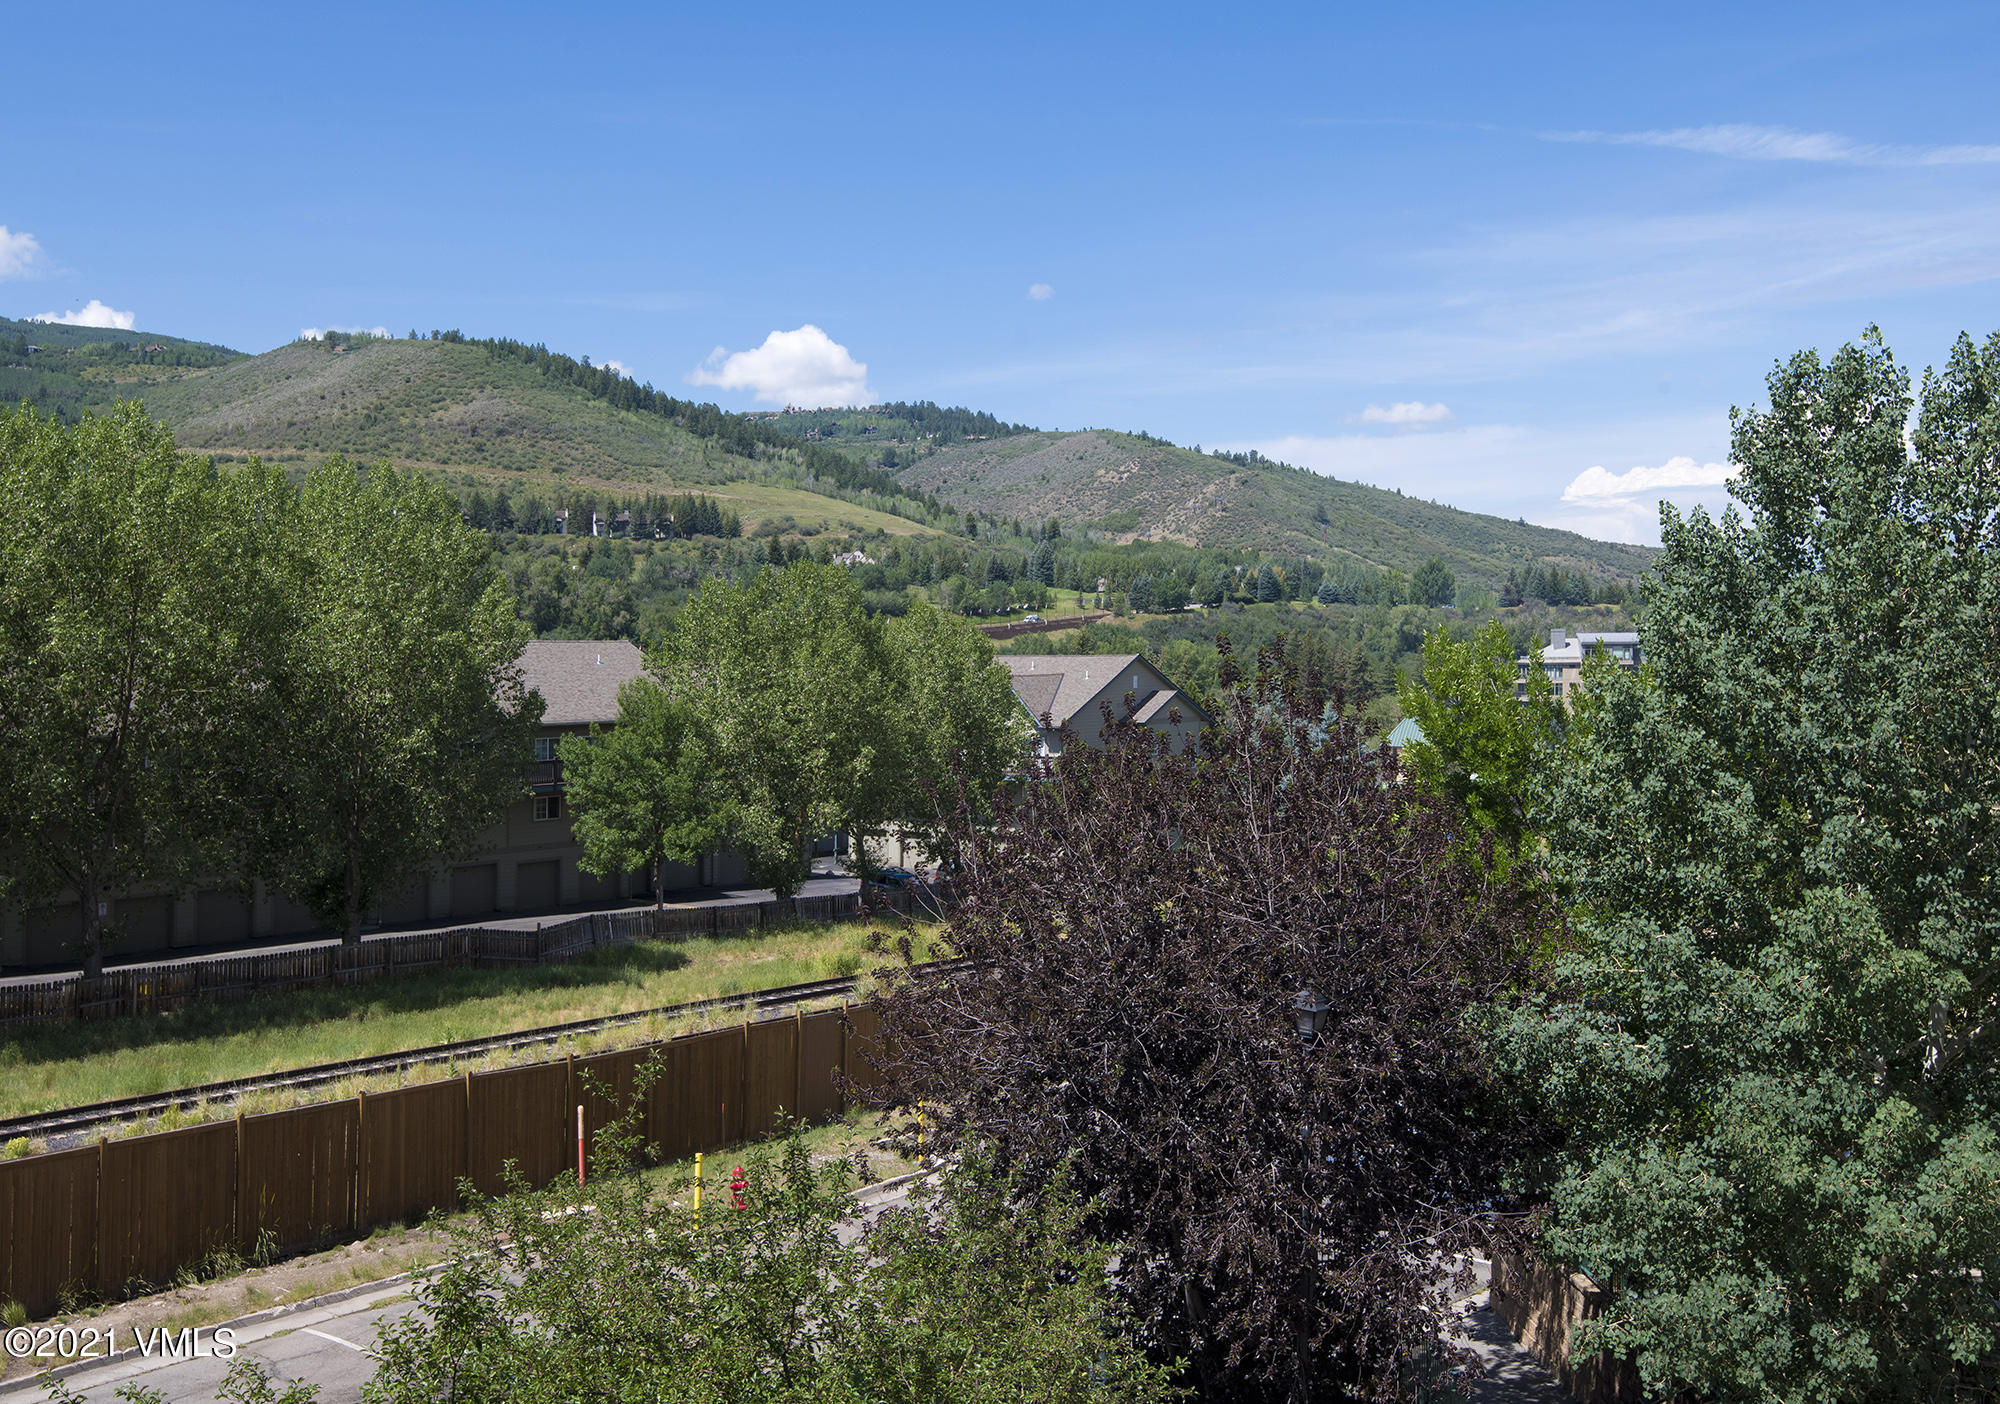 Well located 2 bedroom 2 bath condo in the heart of Avon. Assigned parking space, assigned storage and ski locker with additional guest parking available. New gas range, newer appliances including full sized stack washer and dryer. Close to elevator and stairs for easy access.